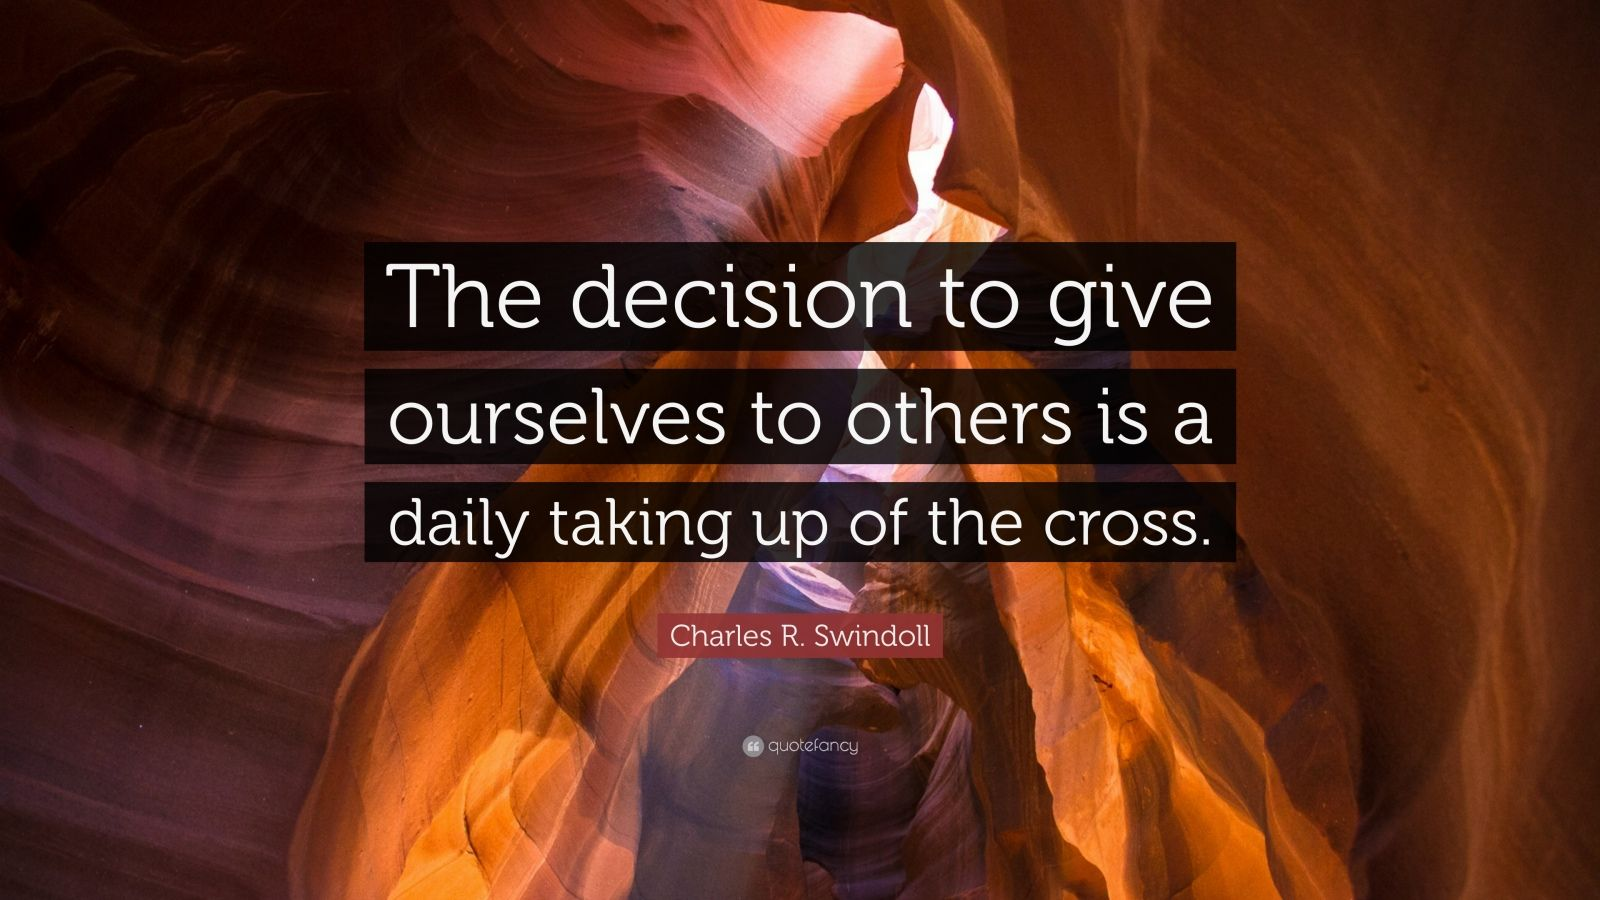 """Charles R. Swindoll Quote: """"The decision to give ourselves to others is a daily taking up of the cross."""""""